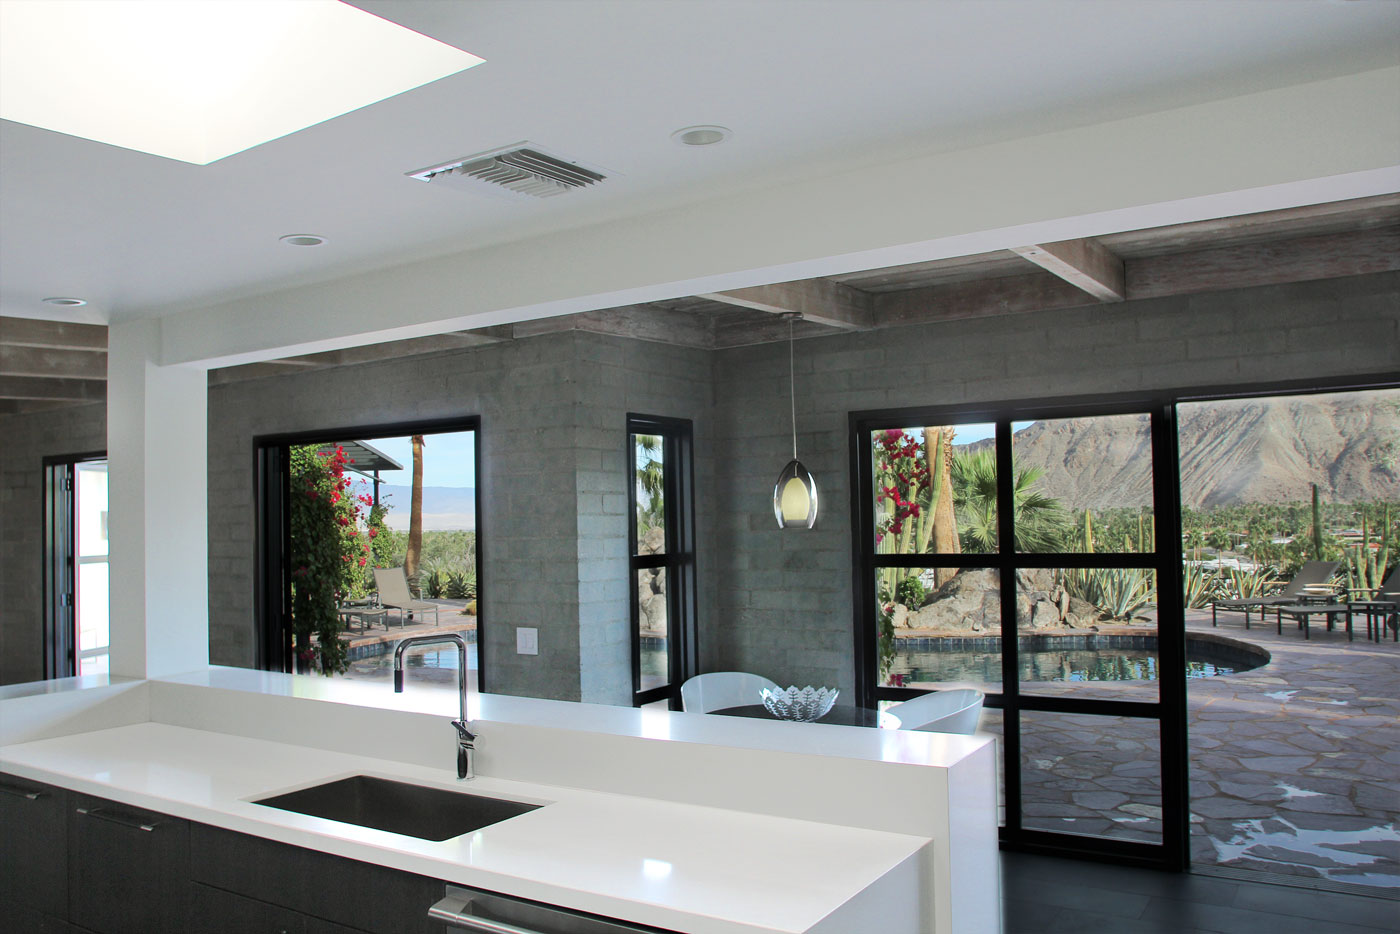 07 Kitchen+with+breakfast+nook+and+views+of+oasis+pool+and+Palm+Springs+valley